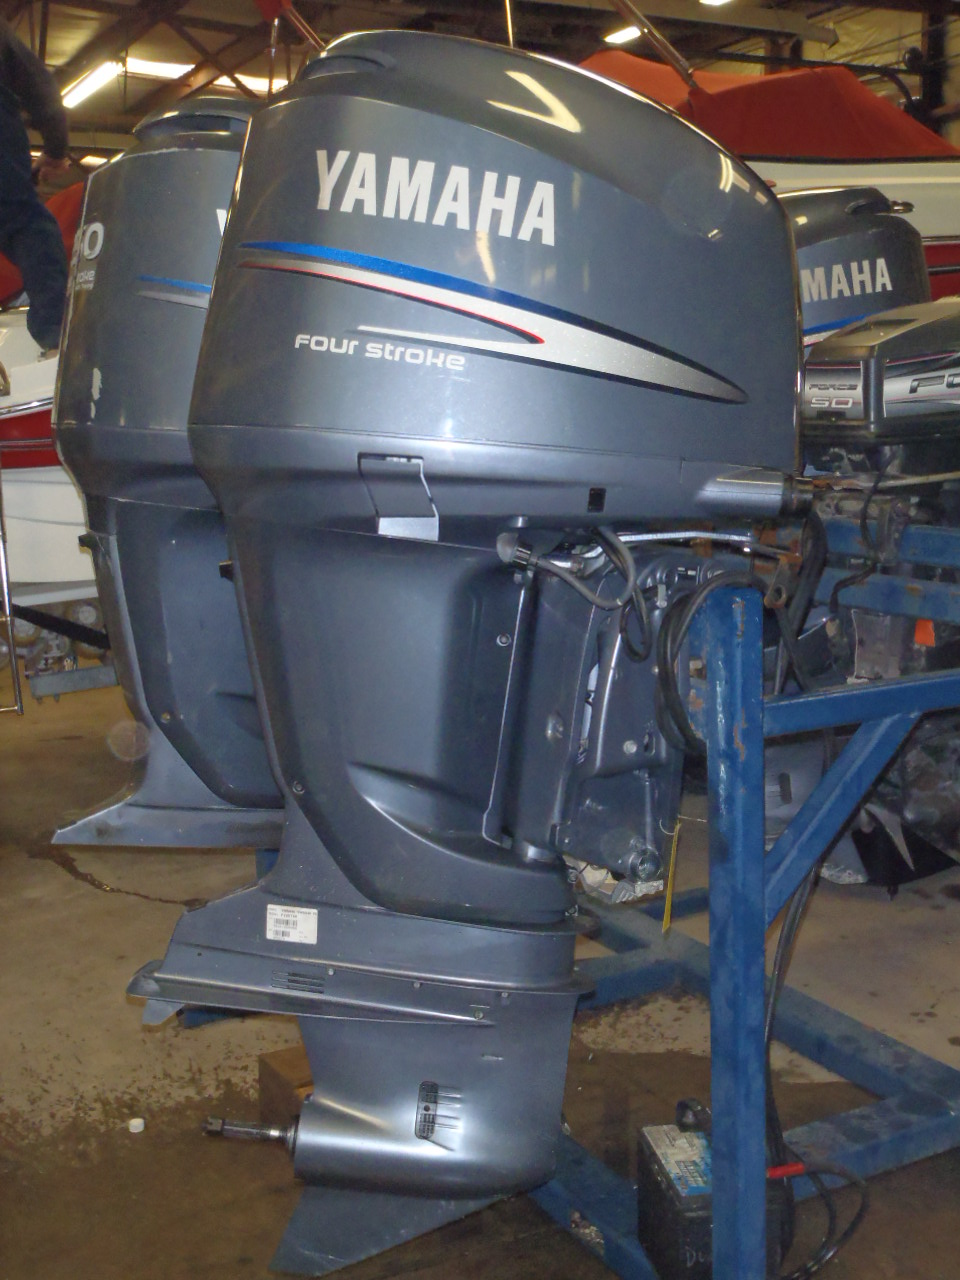 Yamaha jet boaters view forum general discussion yamaha for Yamaha jet boat forum